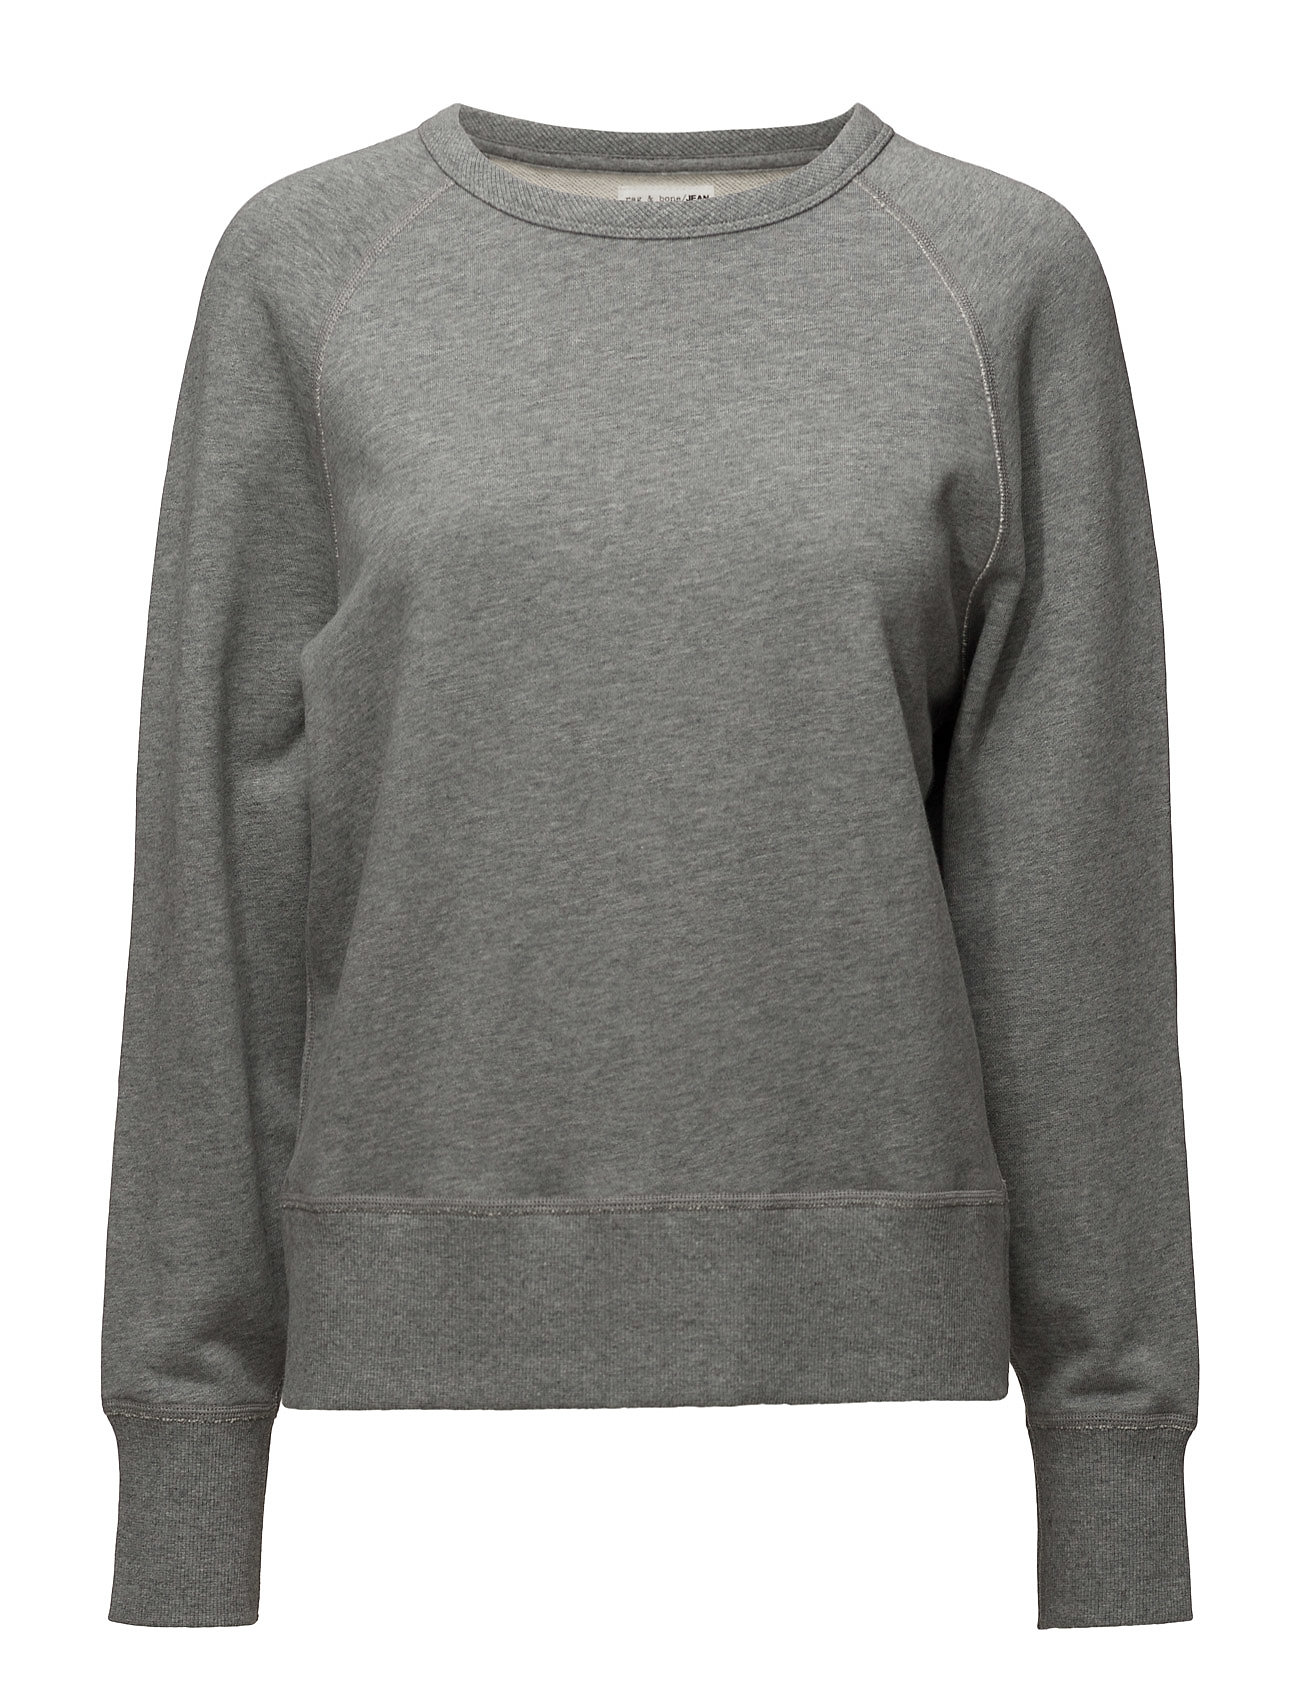 rag & bone Brooklyn - city sweatshirt på boozt.com dk